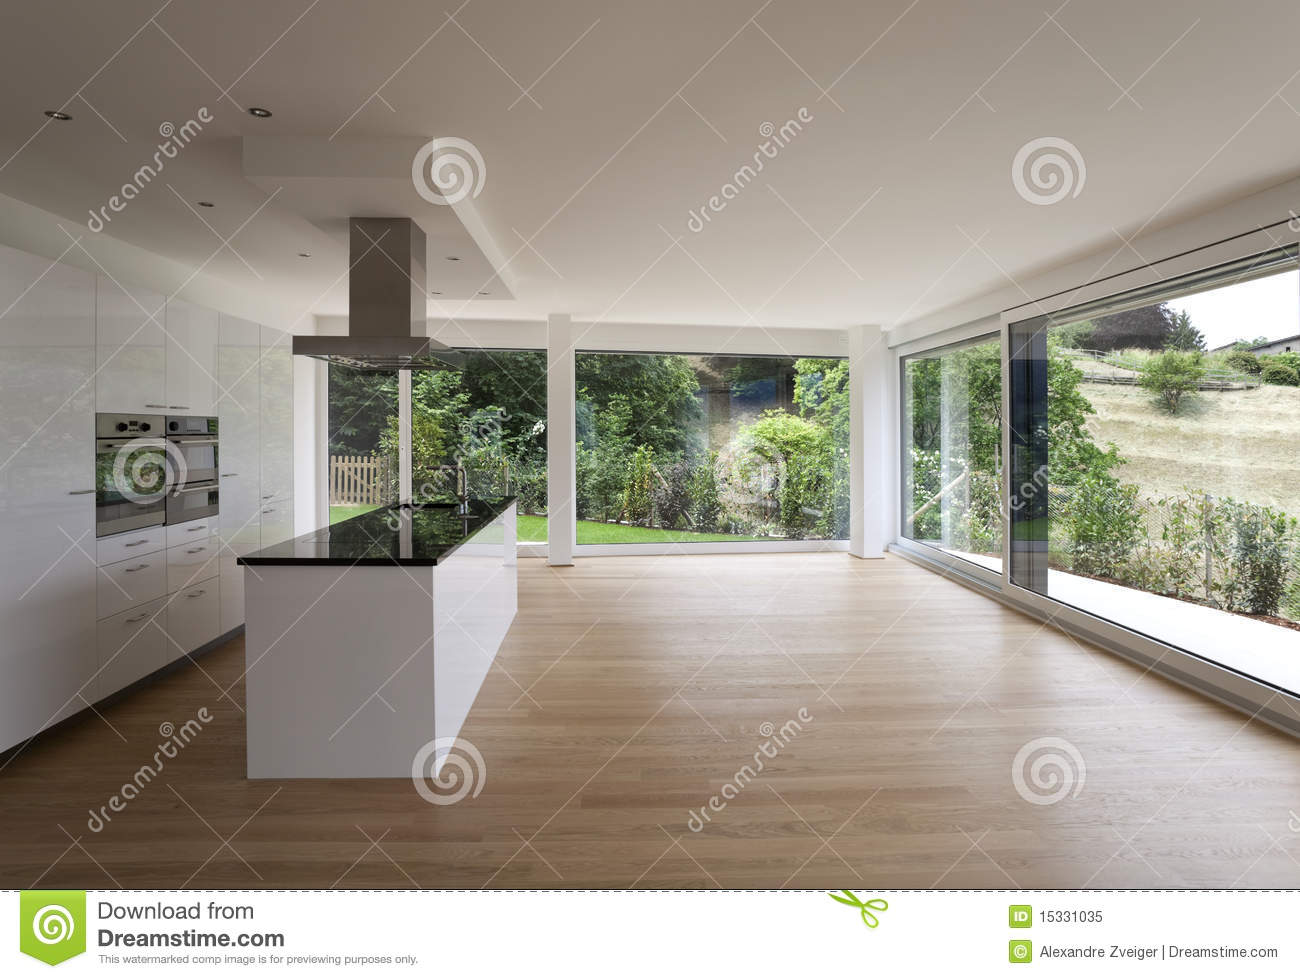 Bel int rieur d 39 une maison moderne image stock image for Interieure maison contemporaine